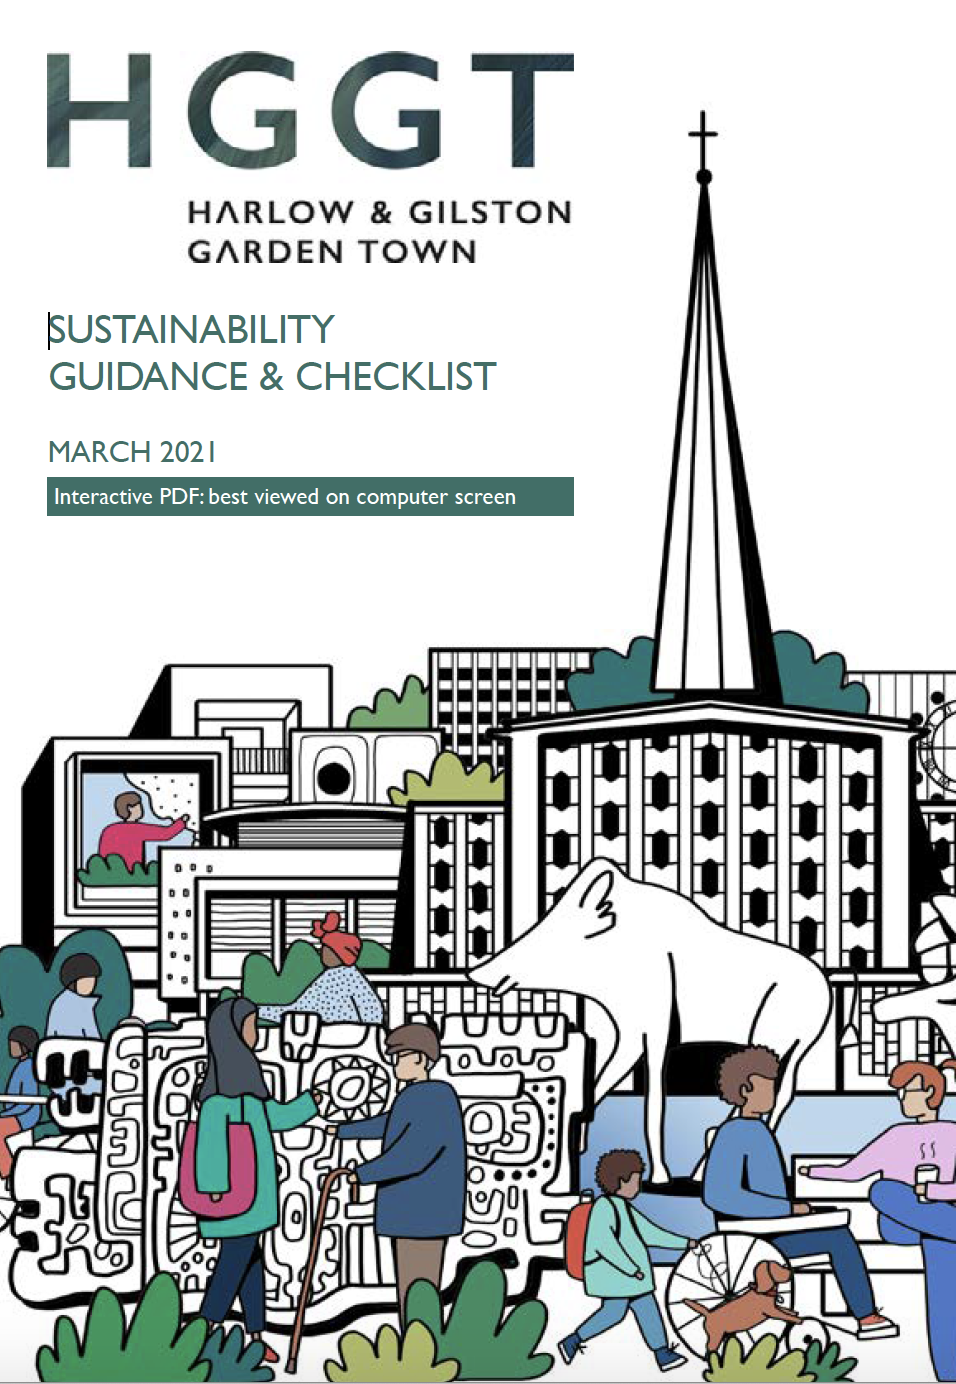 SUSTAINABILITY GUIDANCE & CHECKLIST front page